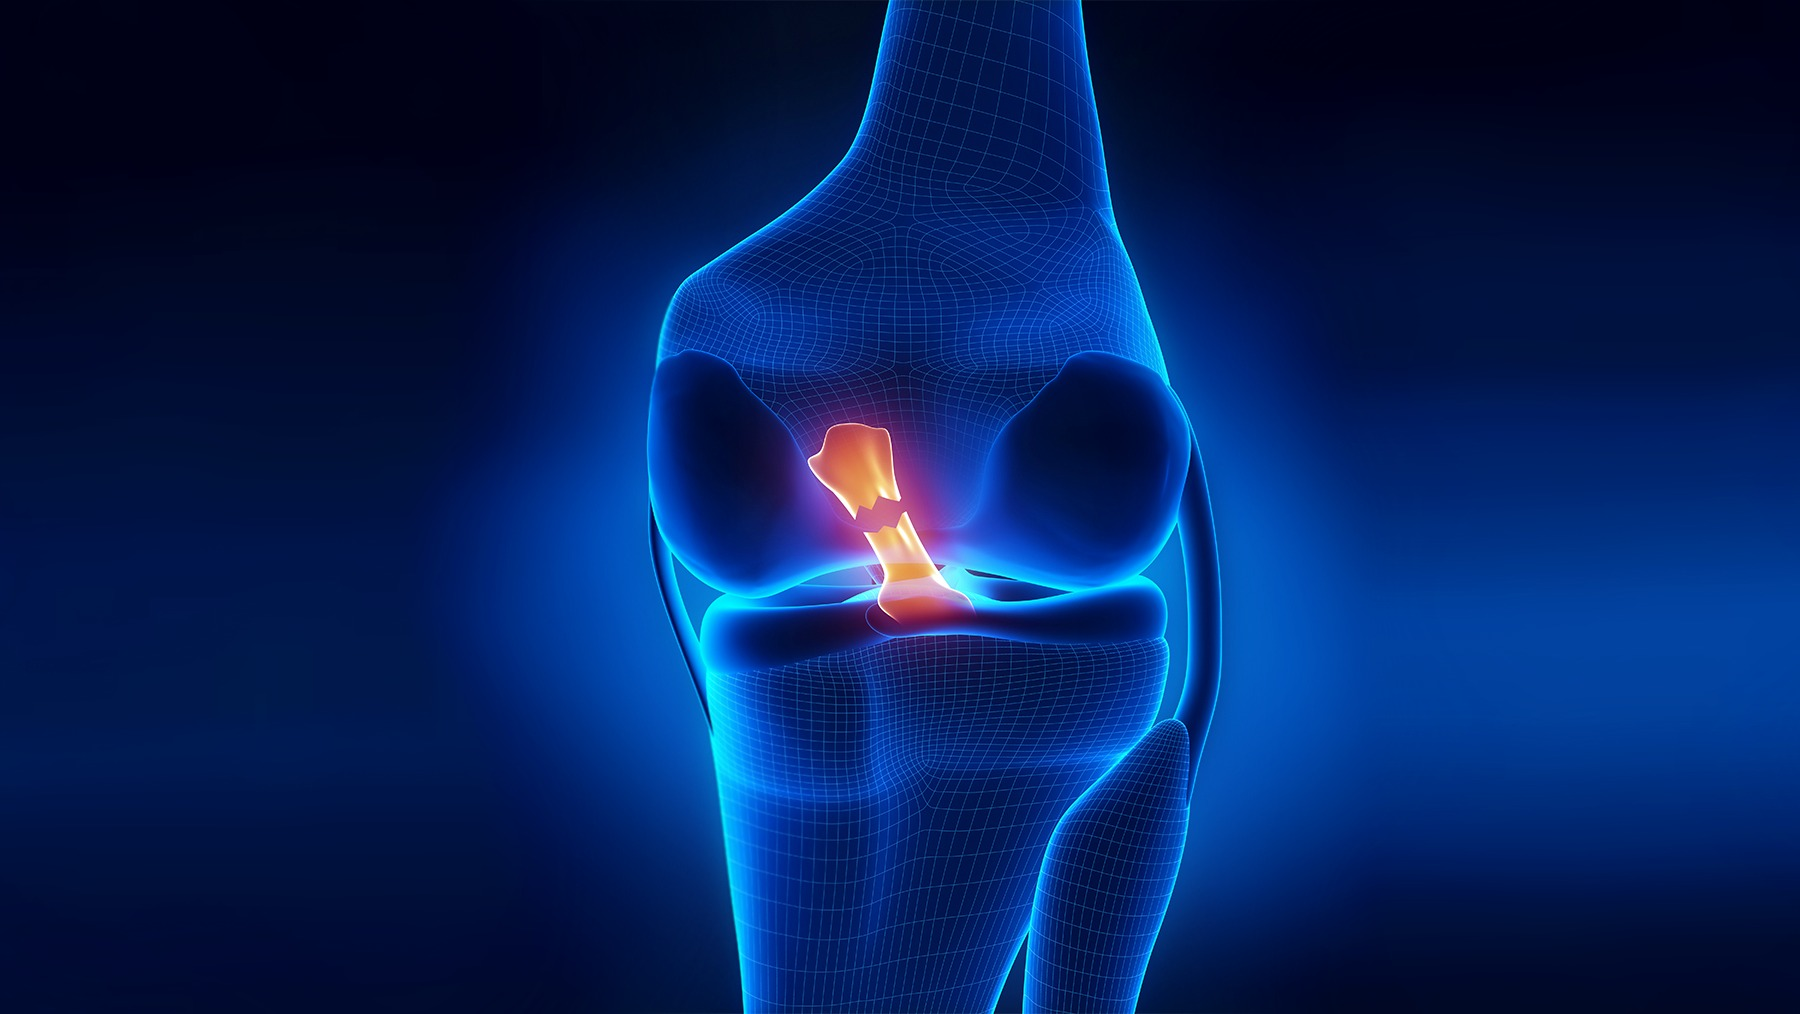 Anterior Cruciate Ligament (Acl) Reconstruction In Iran